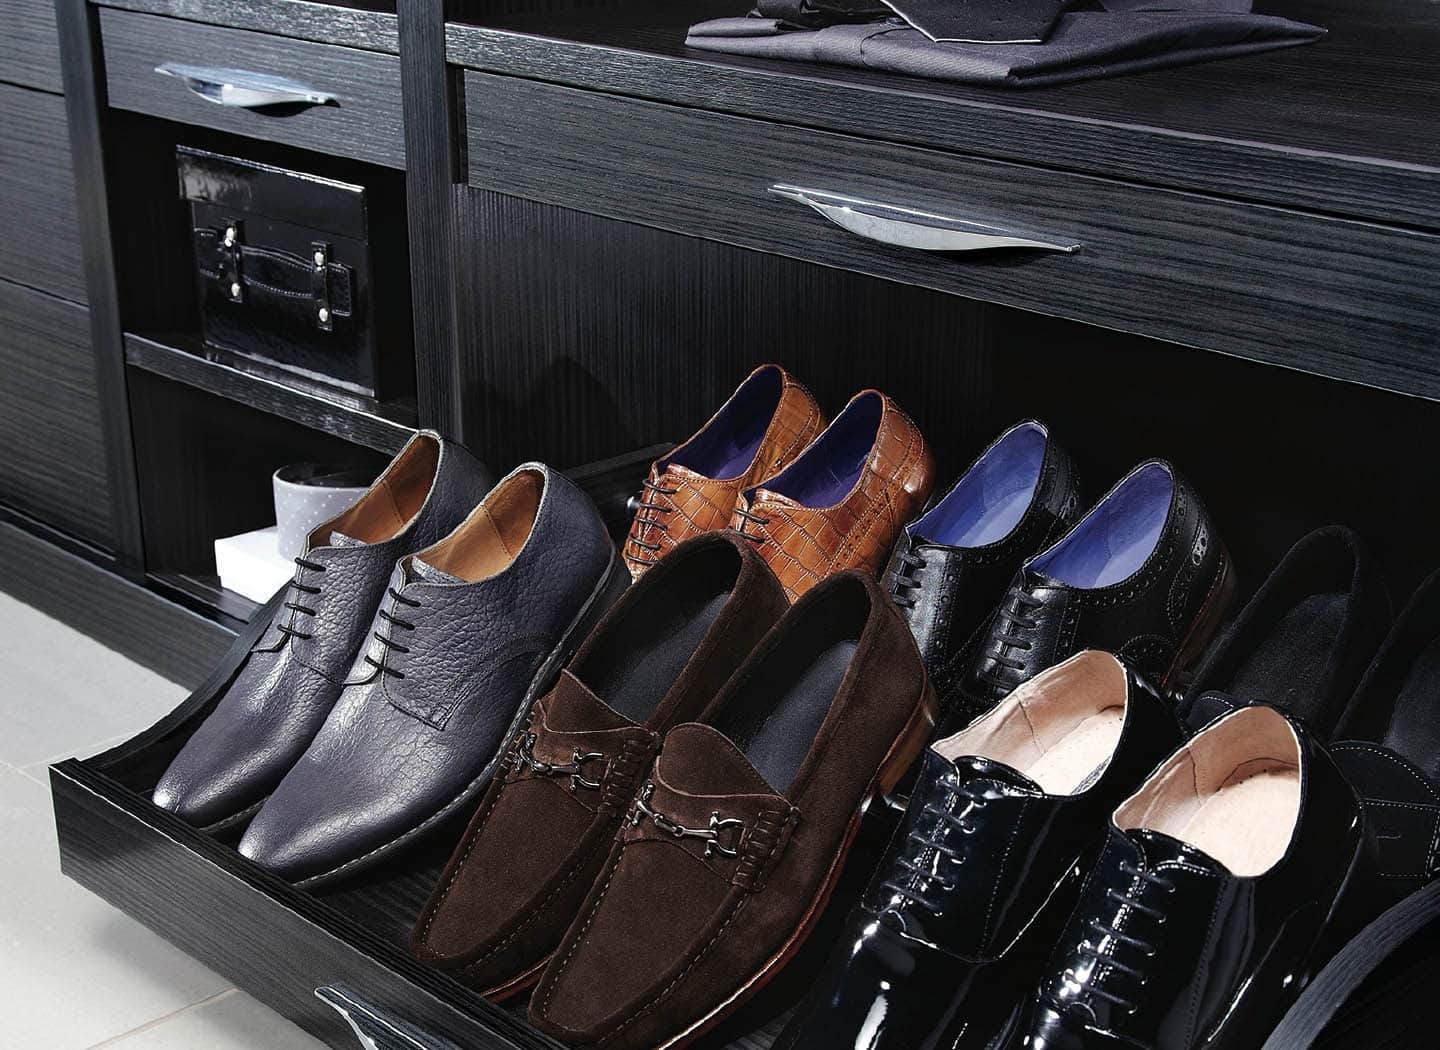 Shoe rack in Aura Black walk in wardrobe